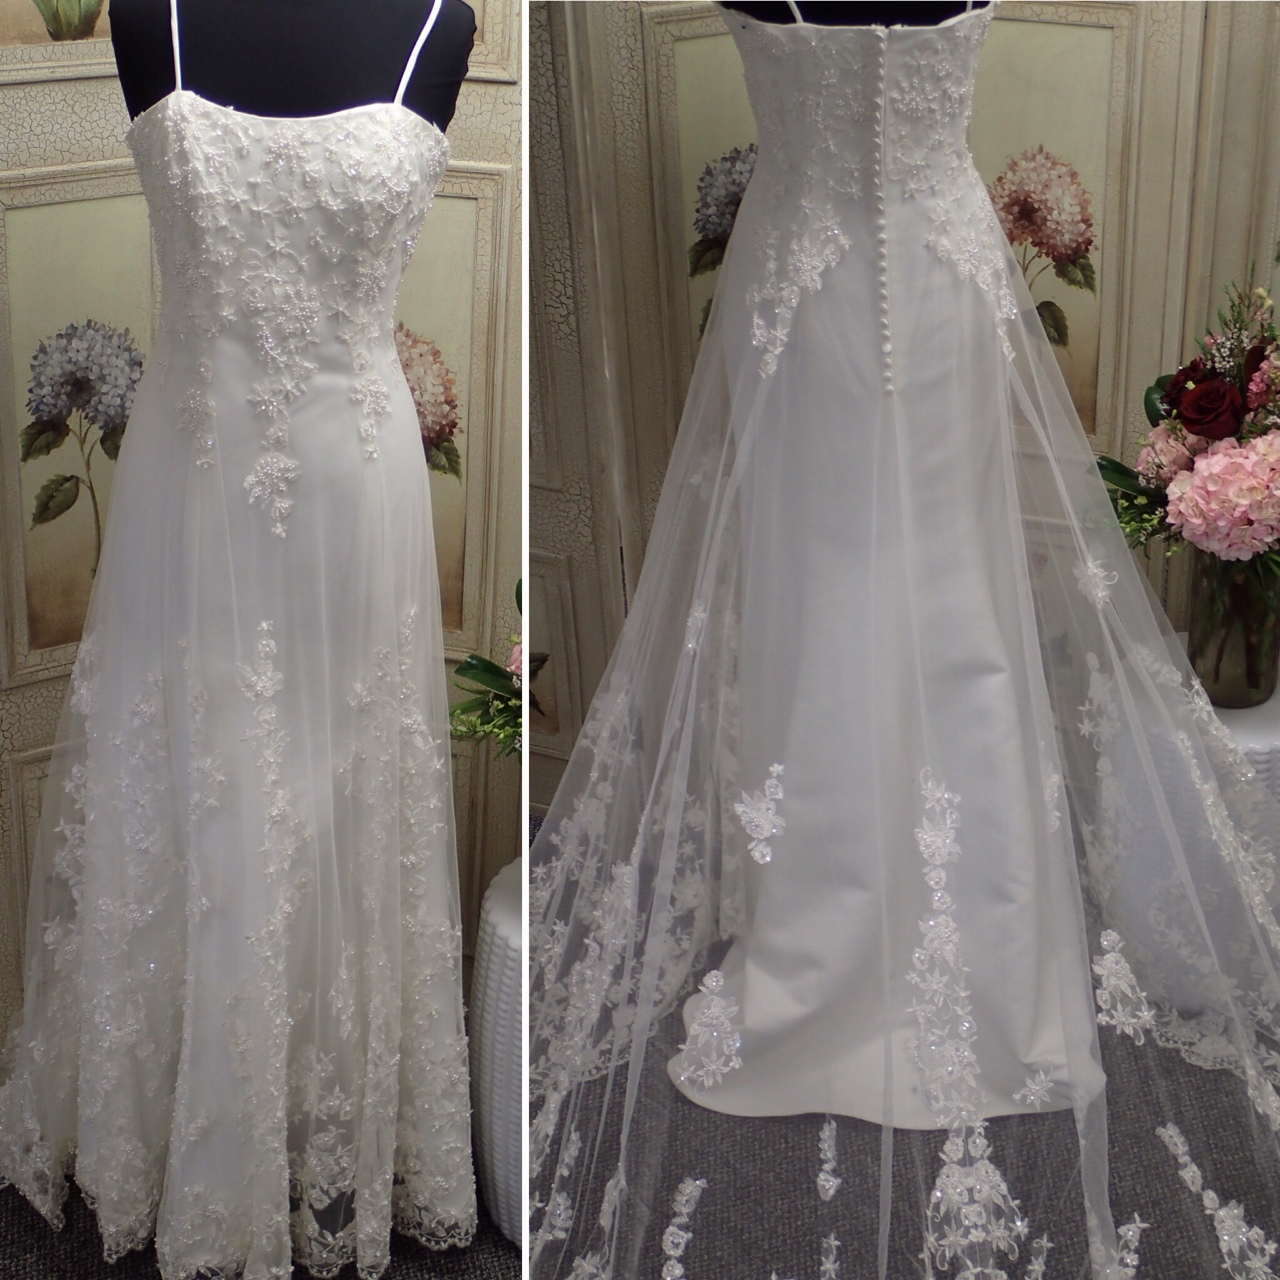 Wedding Gown Resale: Champagne Taste Bridal Boutique Coupons Near Me In North